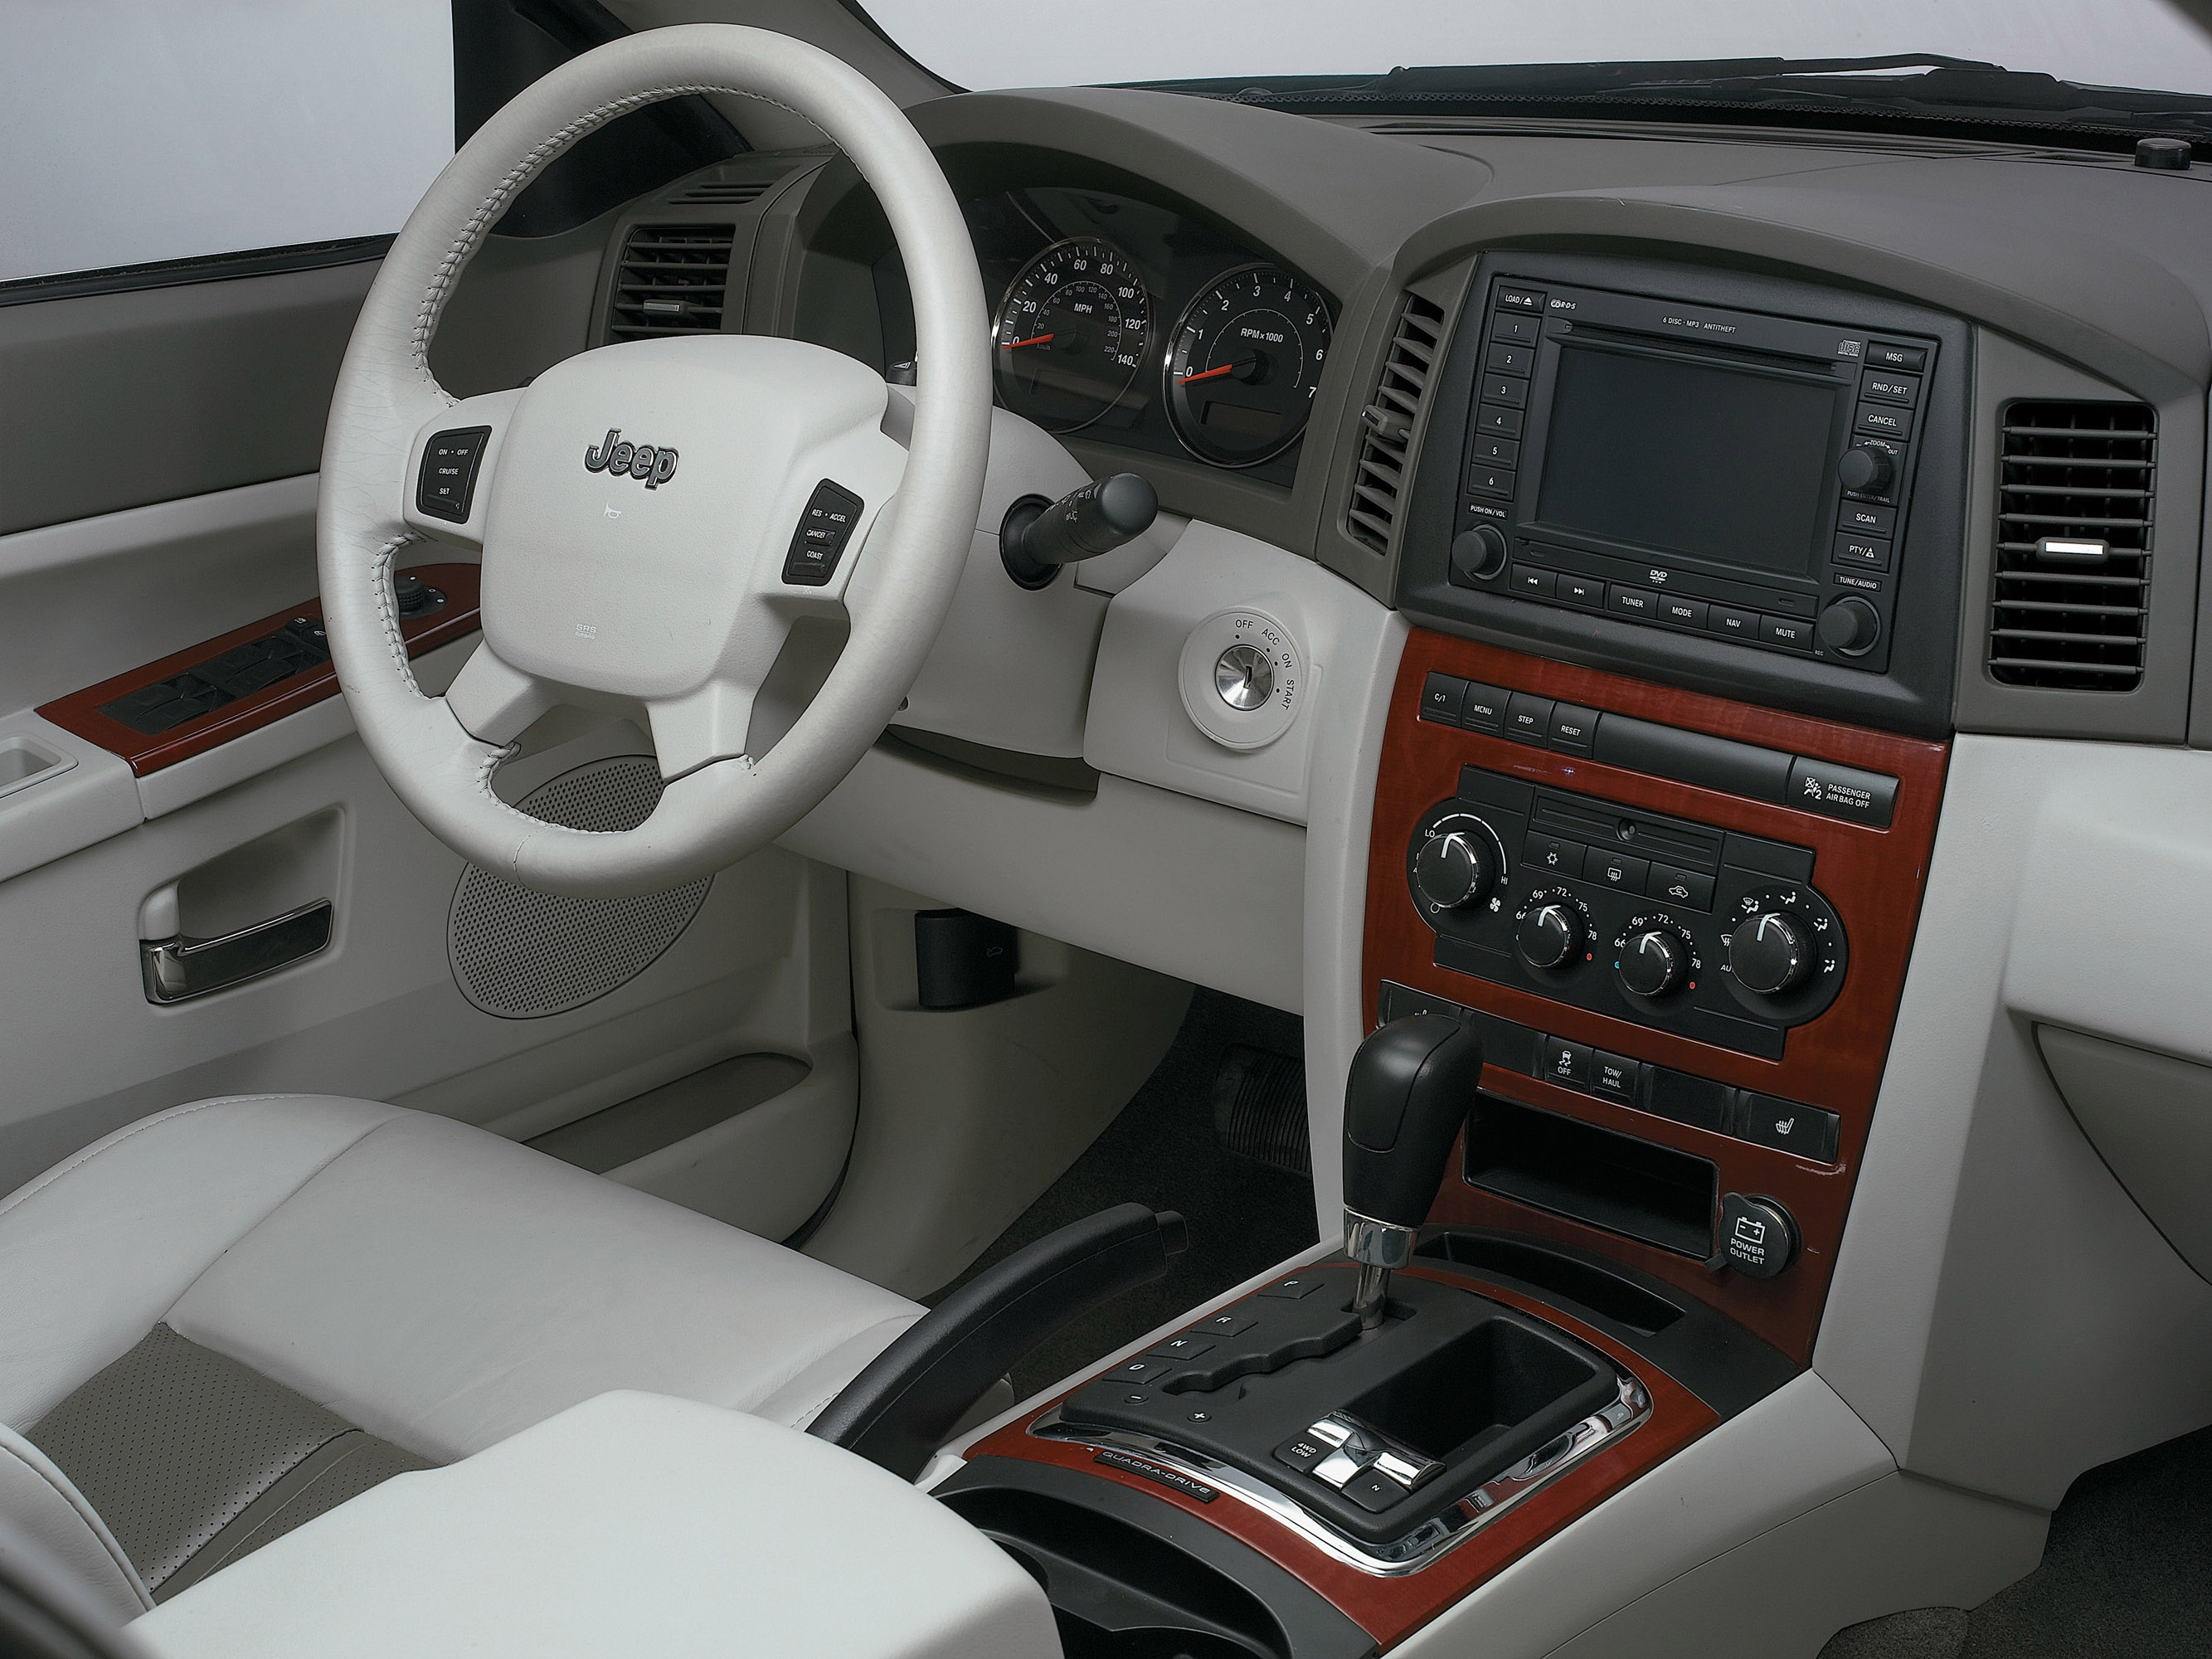 2005 jeep grand cherokee limited owners manual